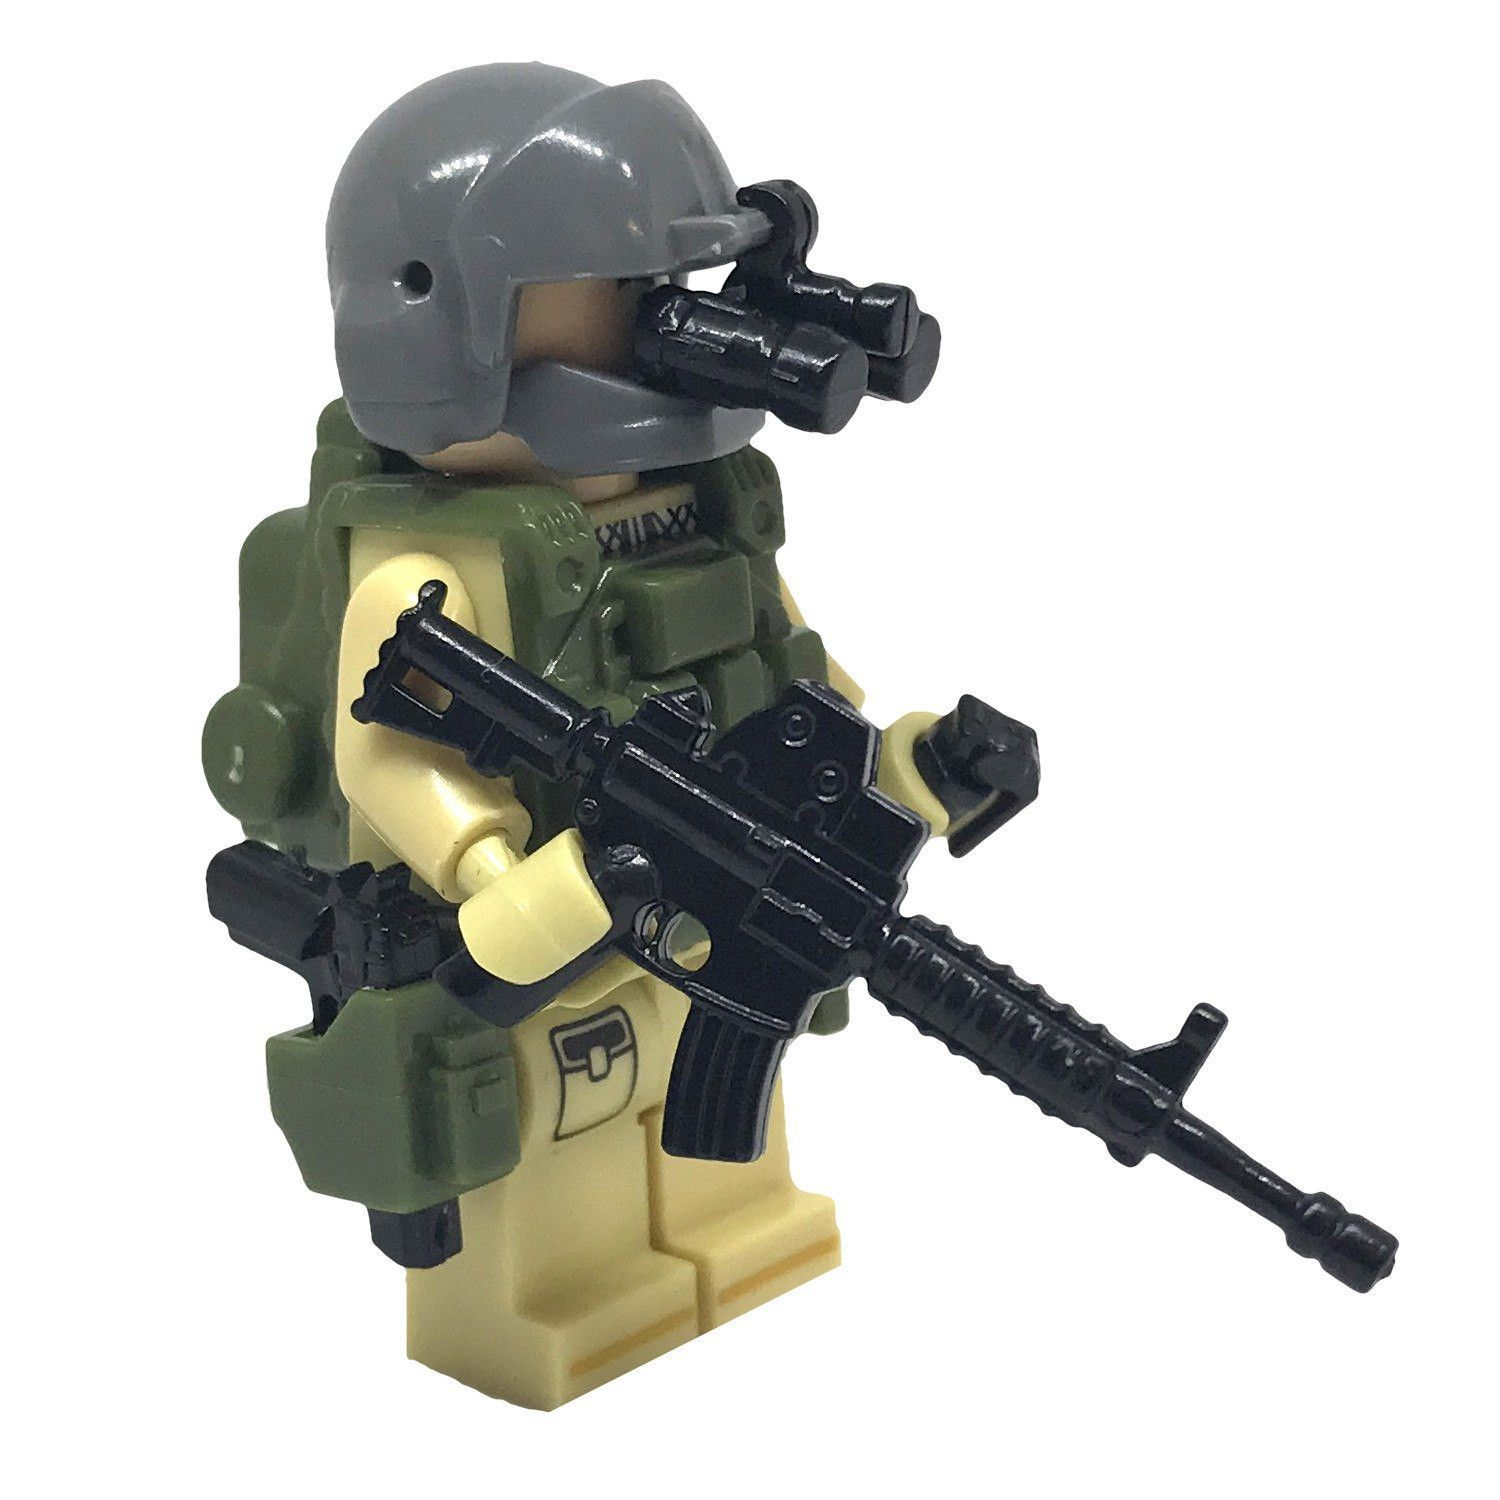 Brick Forces United States Air Force (USAF) Pararescue